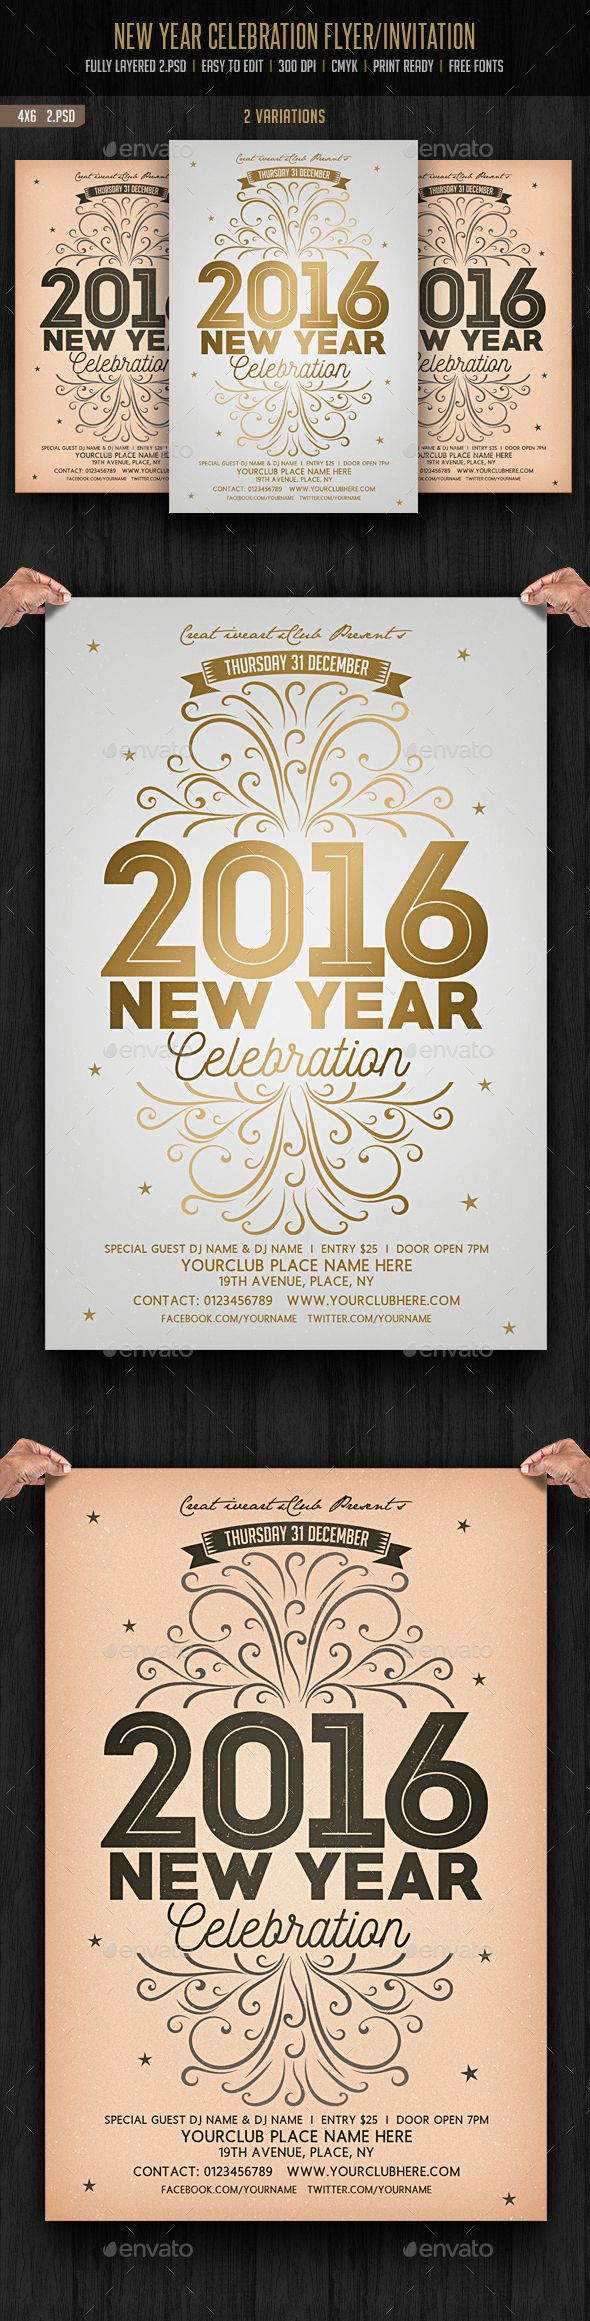 New Year Celebration Flyer — Photoshop PSD #vintage #nightclub • Available here → https://graphicriver.net/item/new-year-celebration-flyer/13724968?ref=pxcr